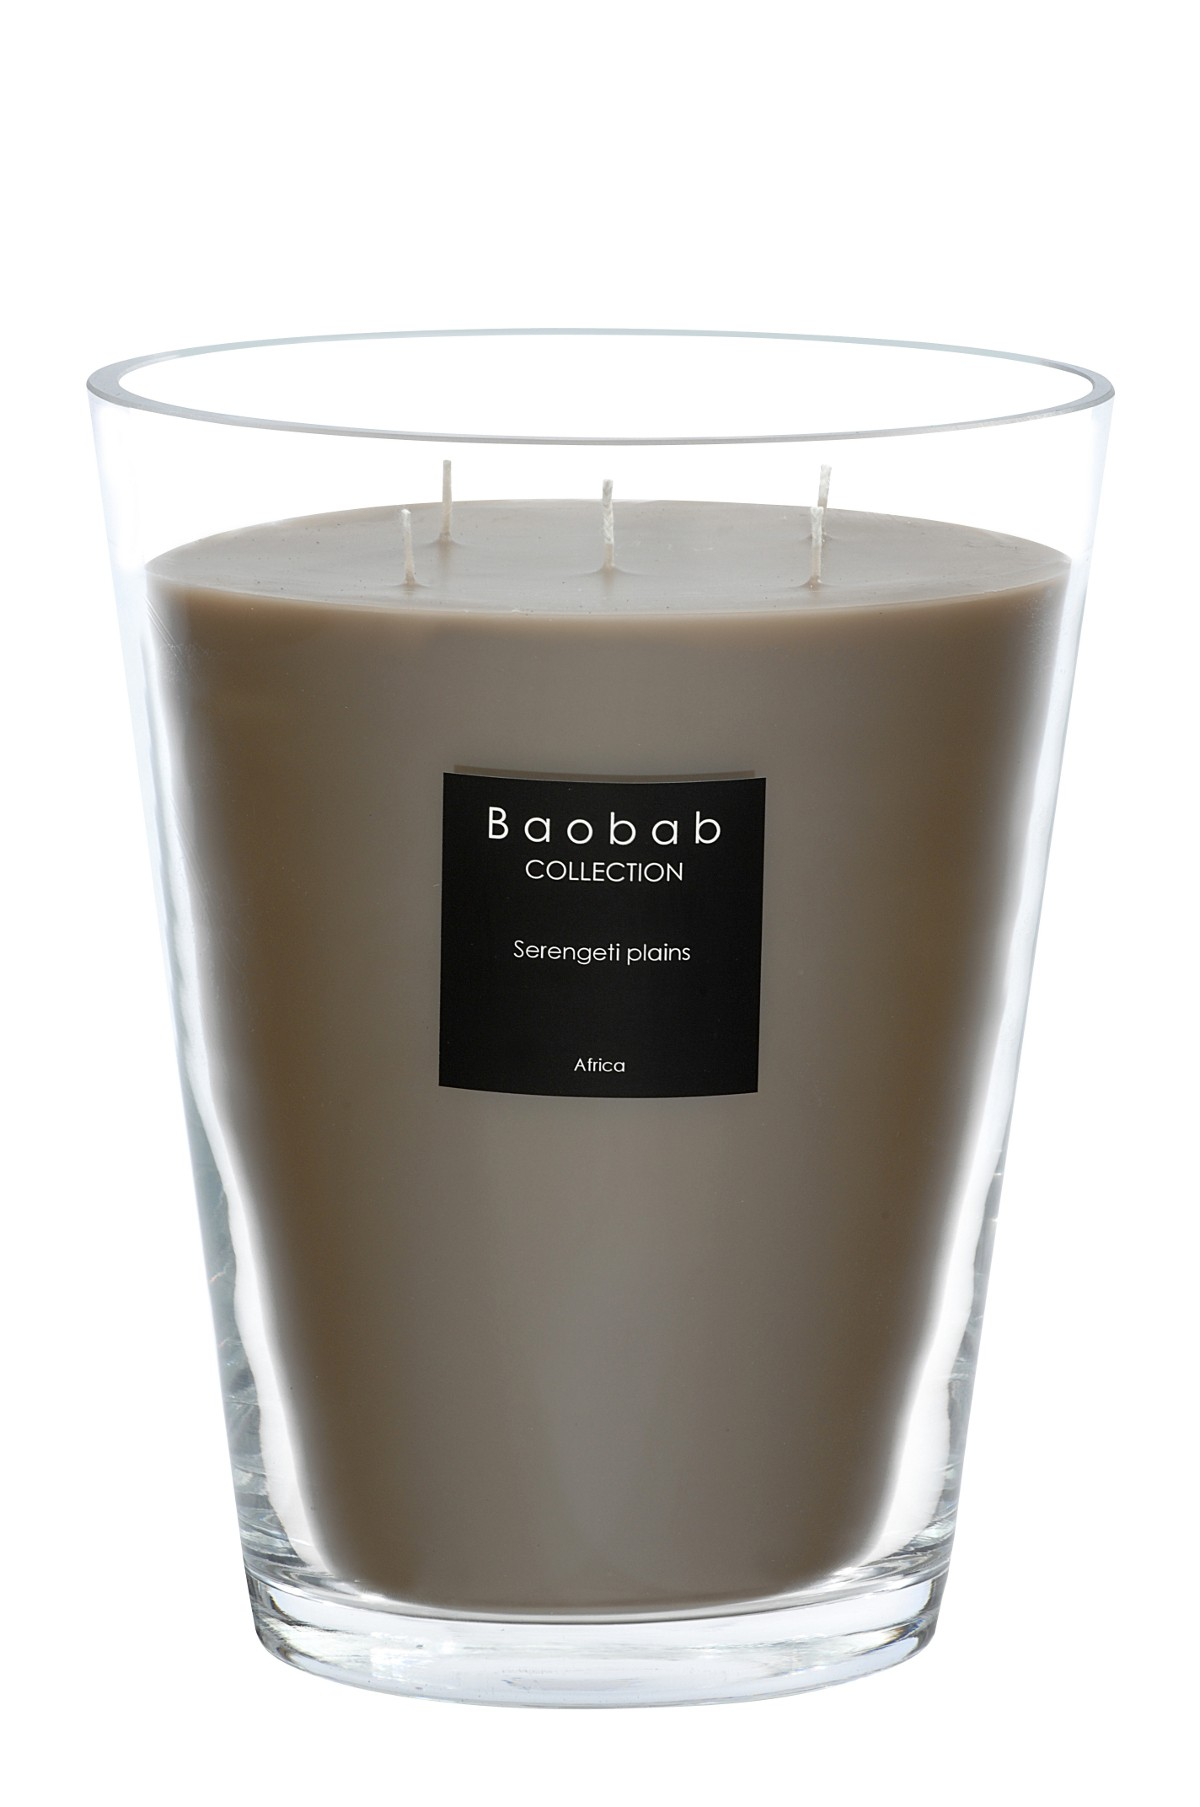 Bougie Baobab Paris Bougie Max 24 Serengeti Plains De Baobab Collection